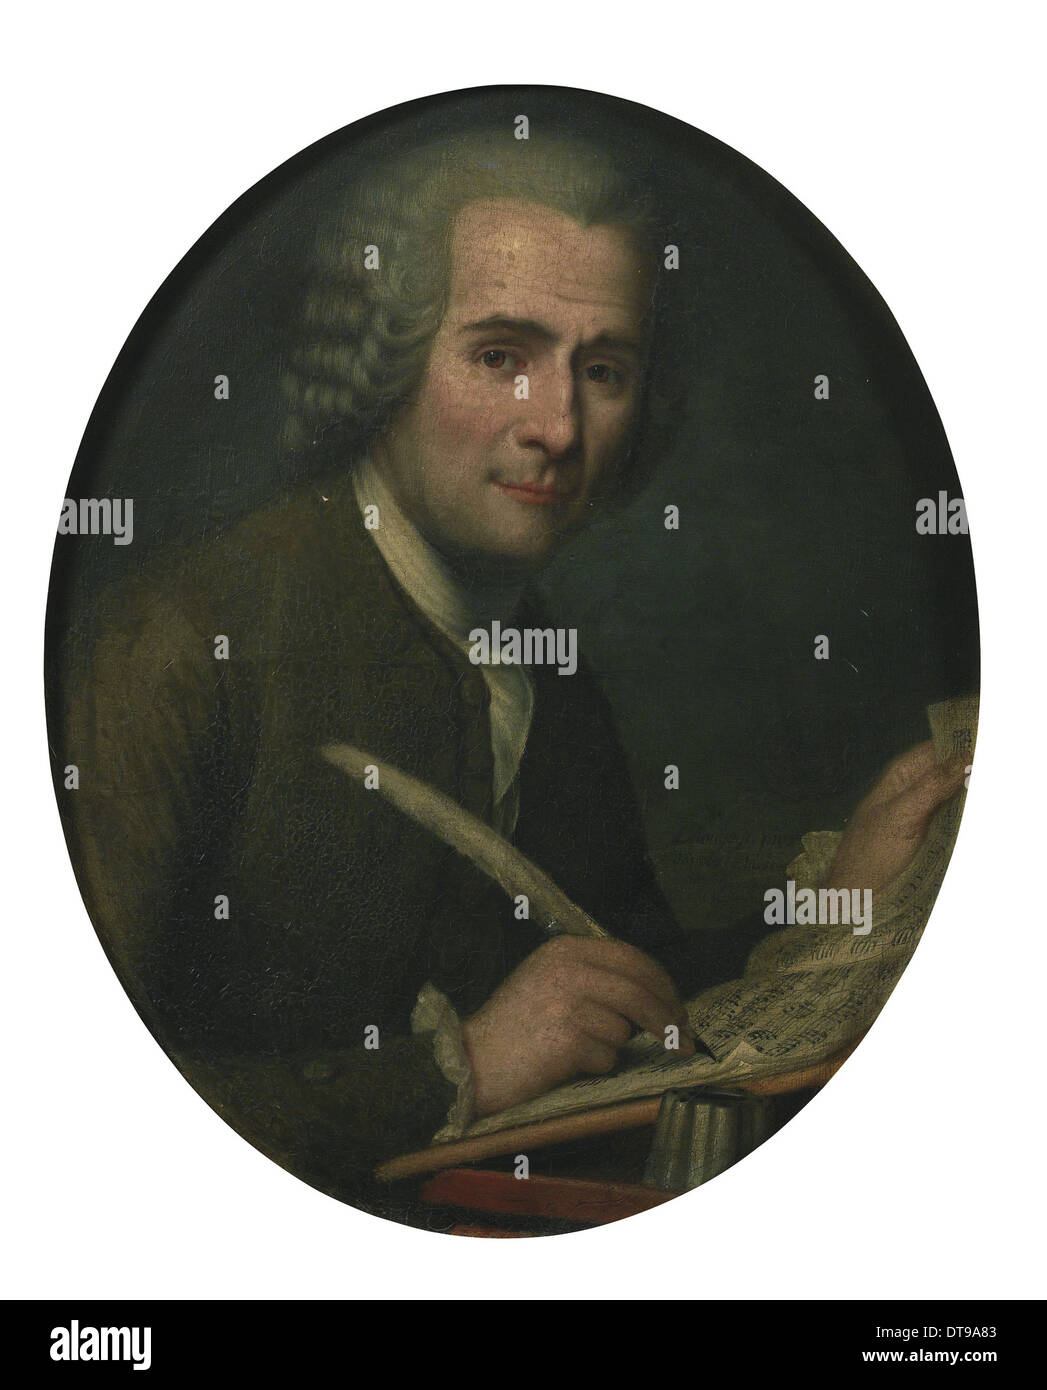 Jean-Jacques Rousseau (1712-1778) writing a sheet music. Artist: Anonymous - Stock Image